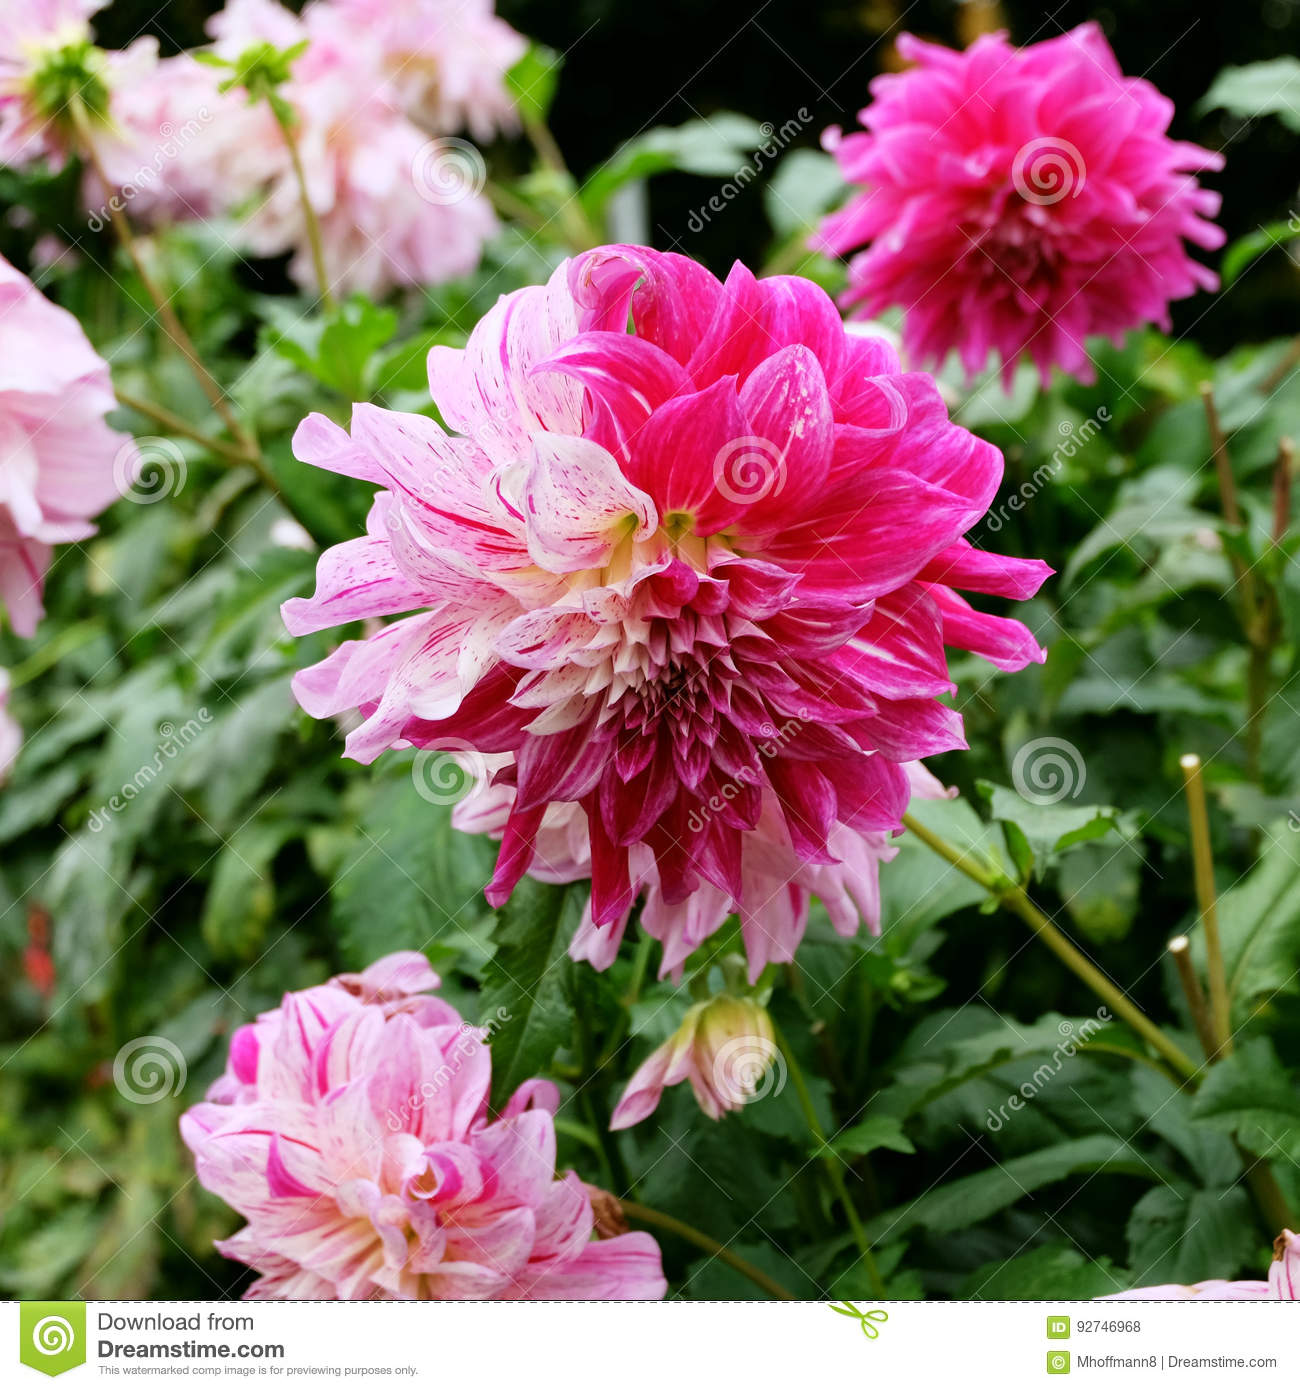 A pink magenta and white colored dahlia dalia flower in a garden a pink magenta and white colored dahlia dalia flower in a garden with other dahlias izmirmasajfo